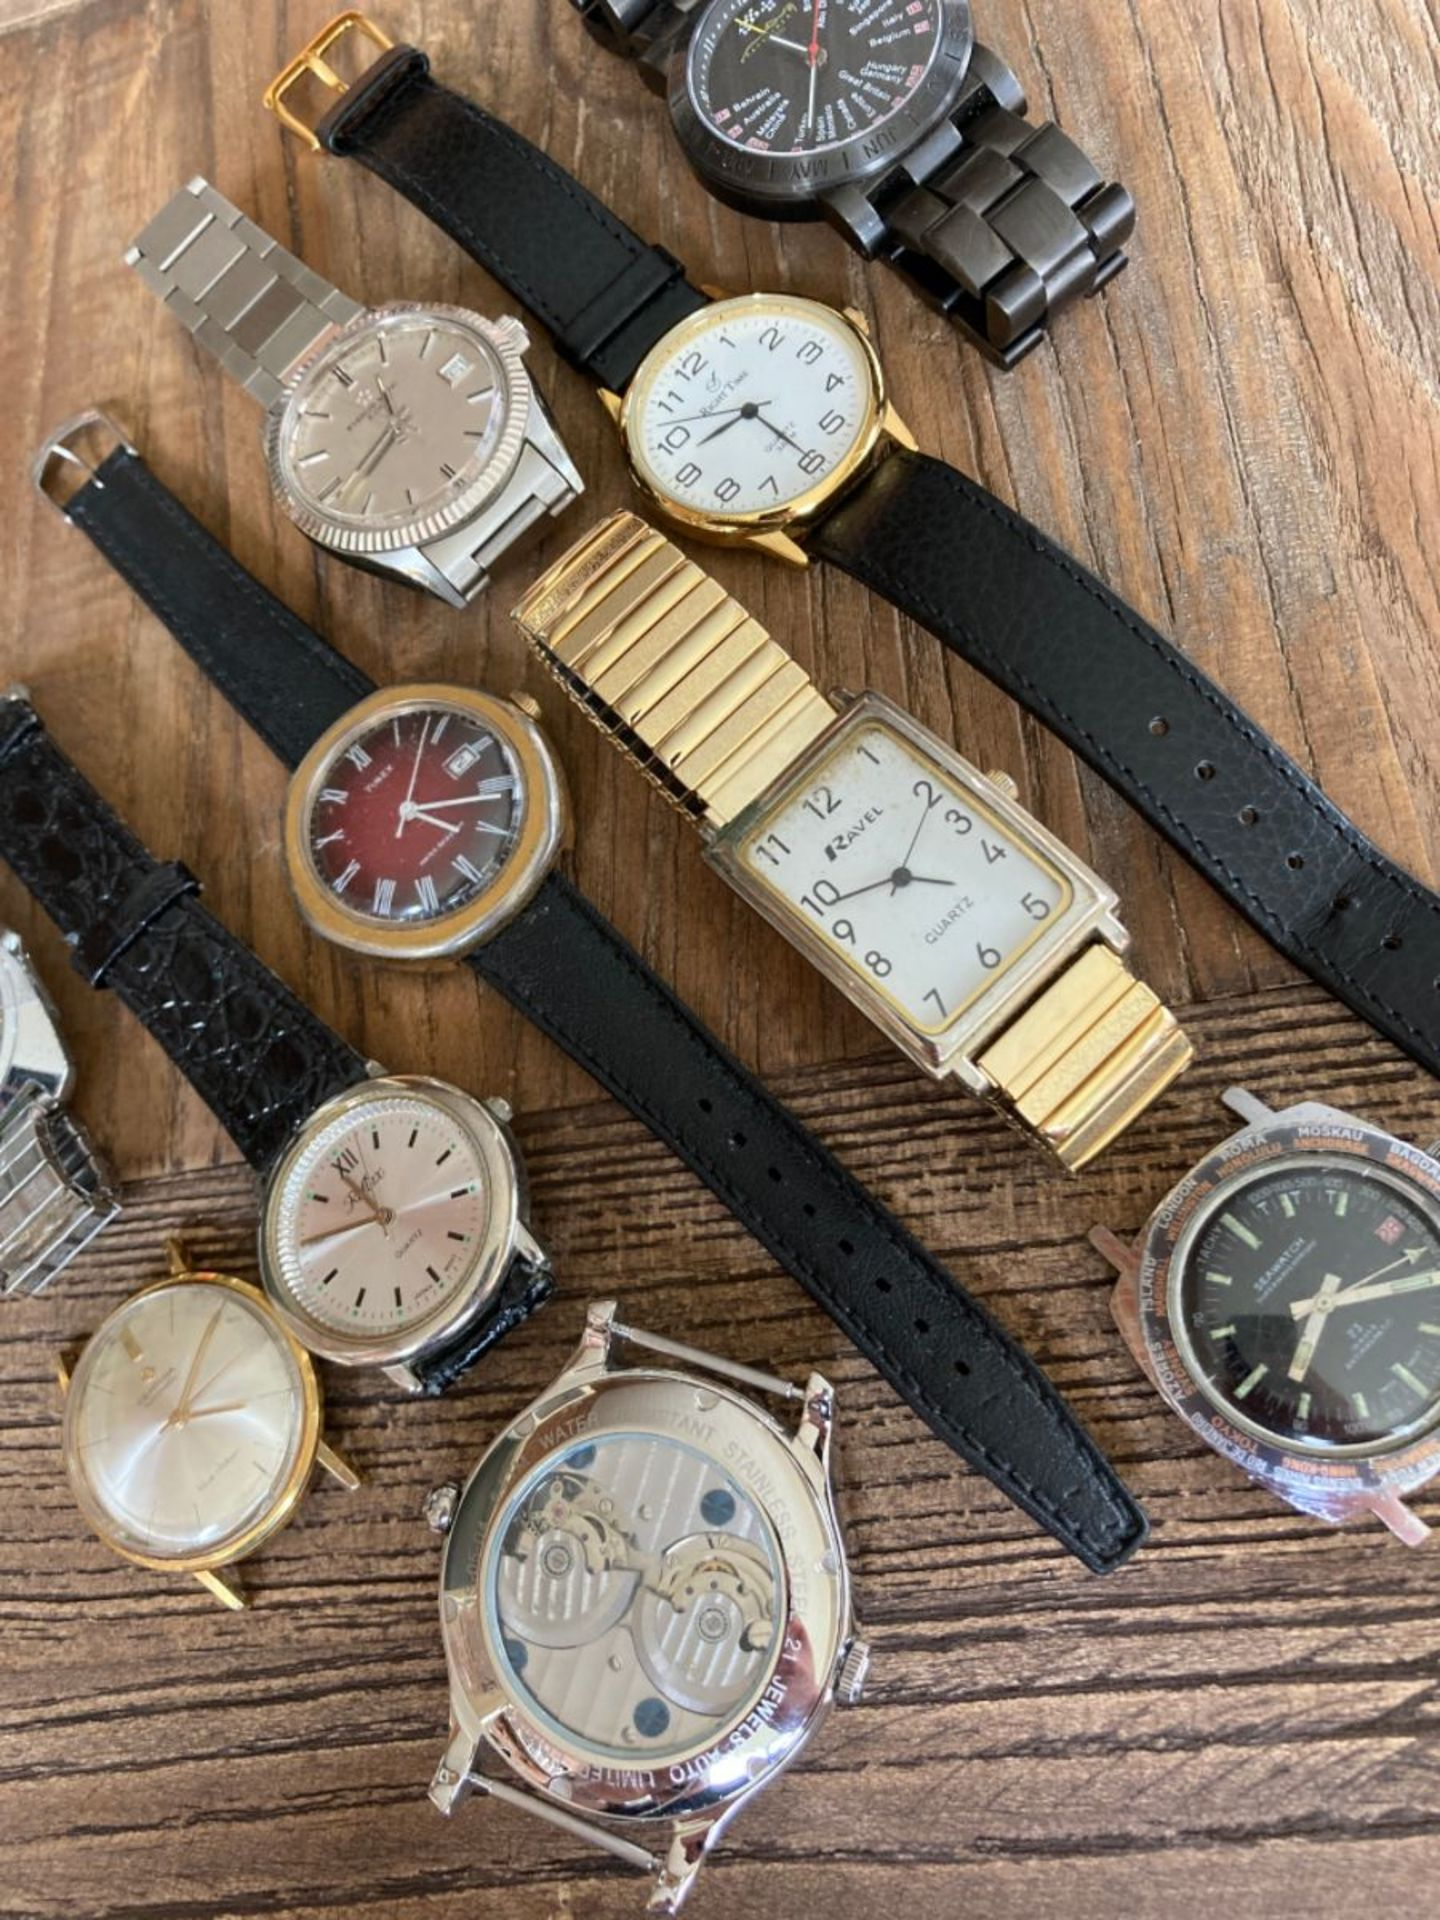 MIXED WATCHES INC SEAWATCH, JOSHUA AND SONS ETC - Image 4 of 4